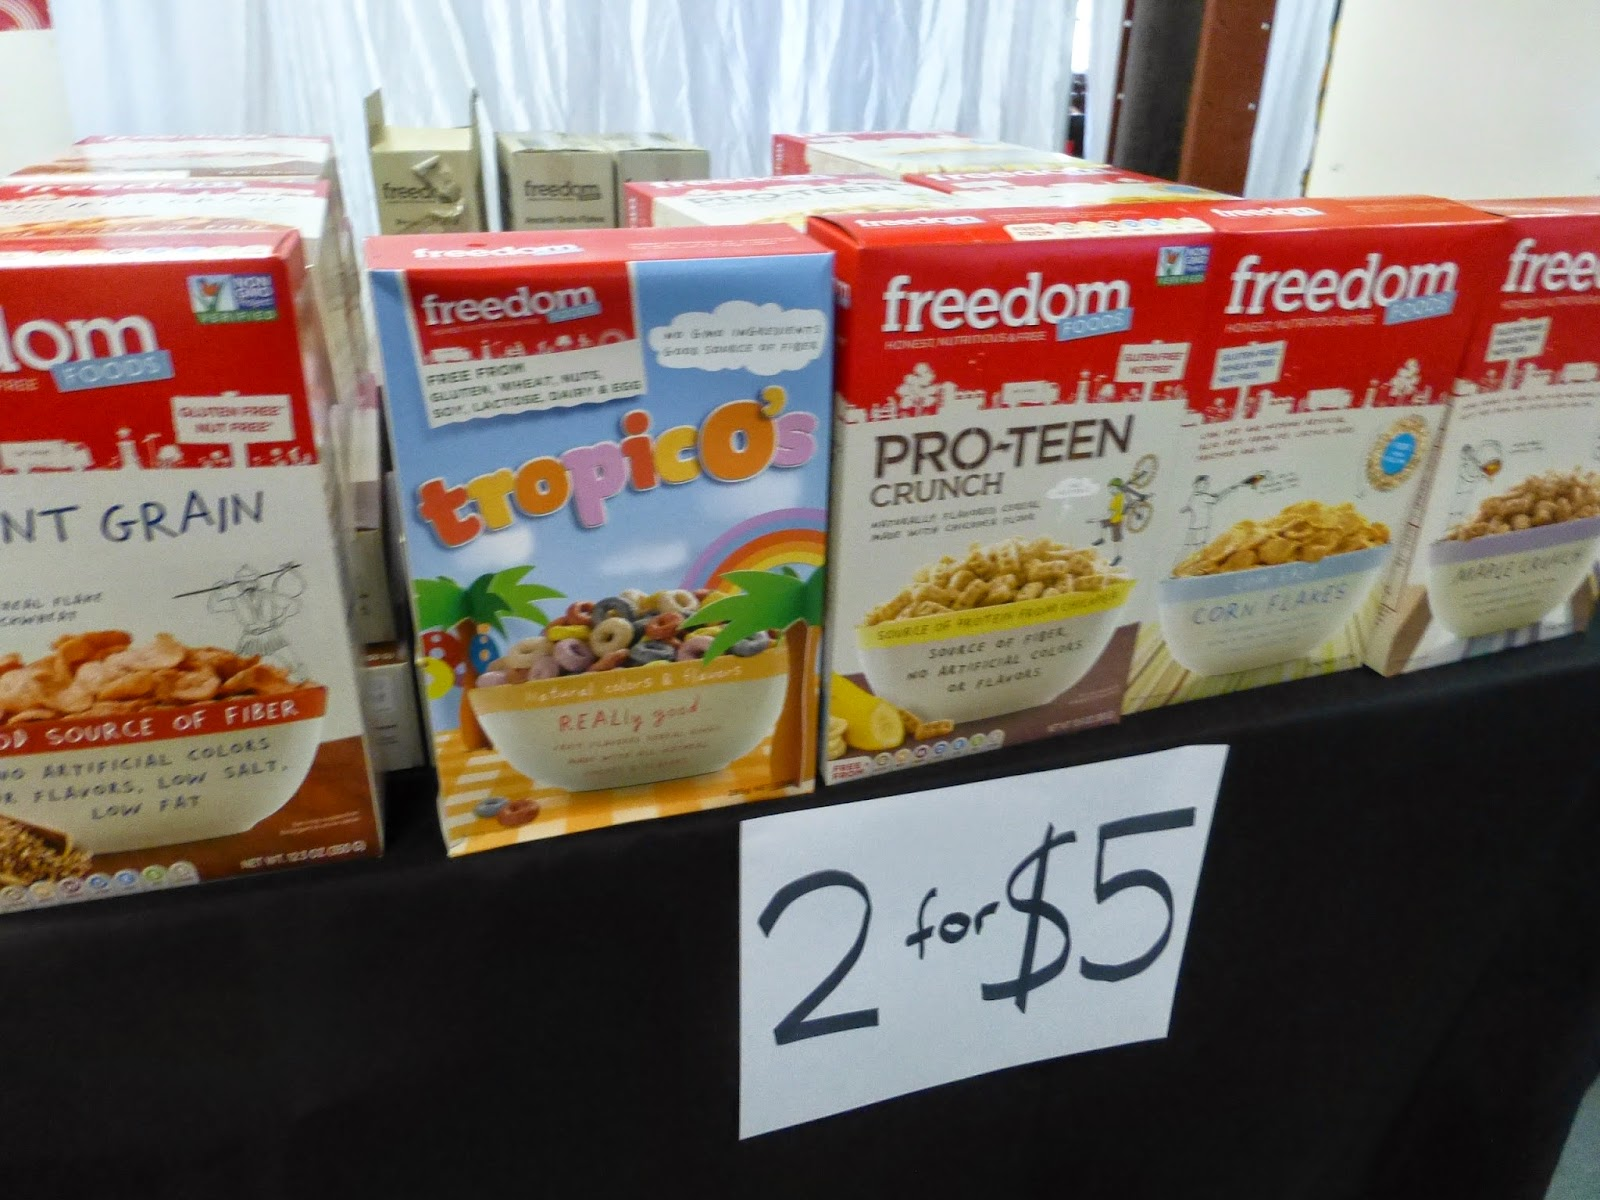 http://www.freedomfoods.com.au/HOME.aspx